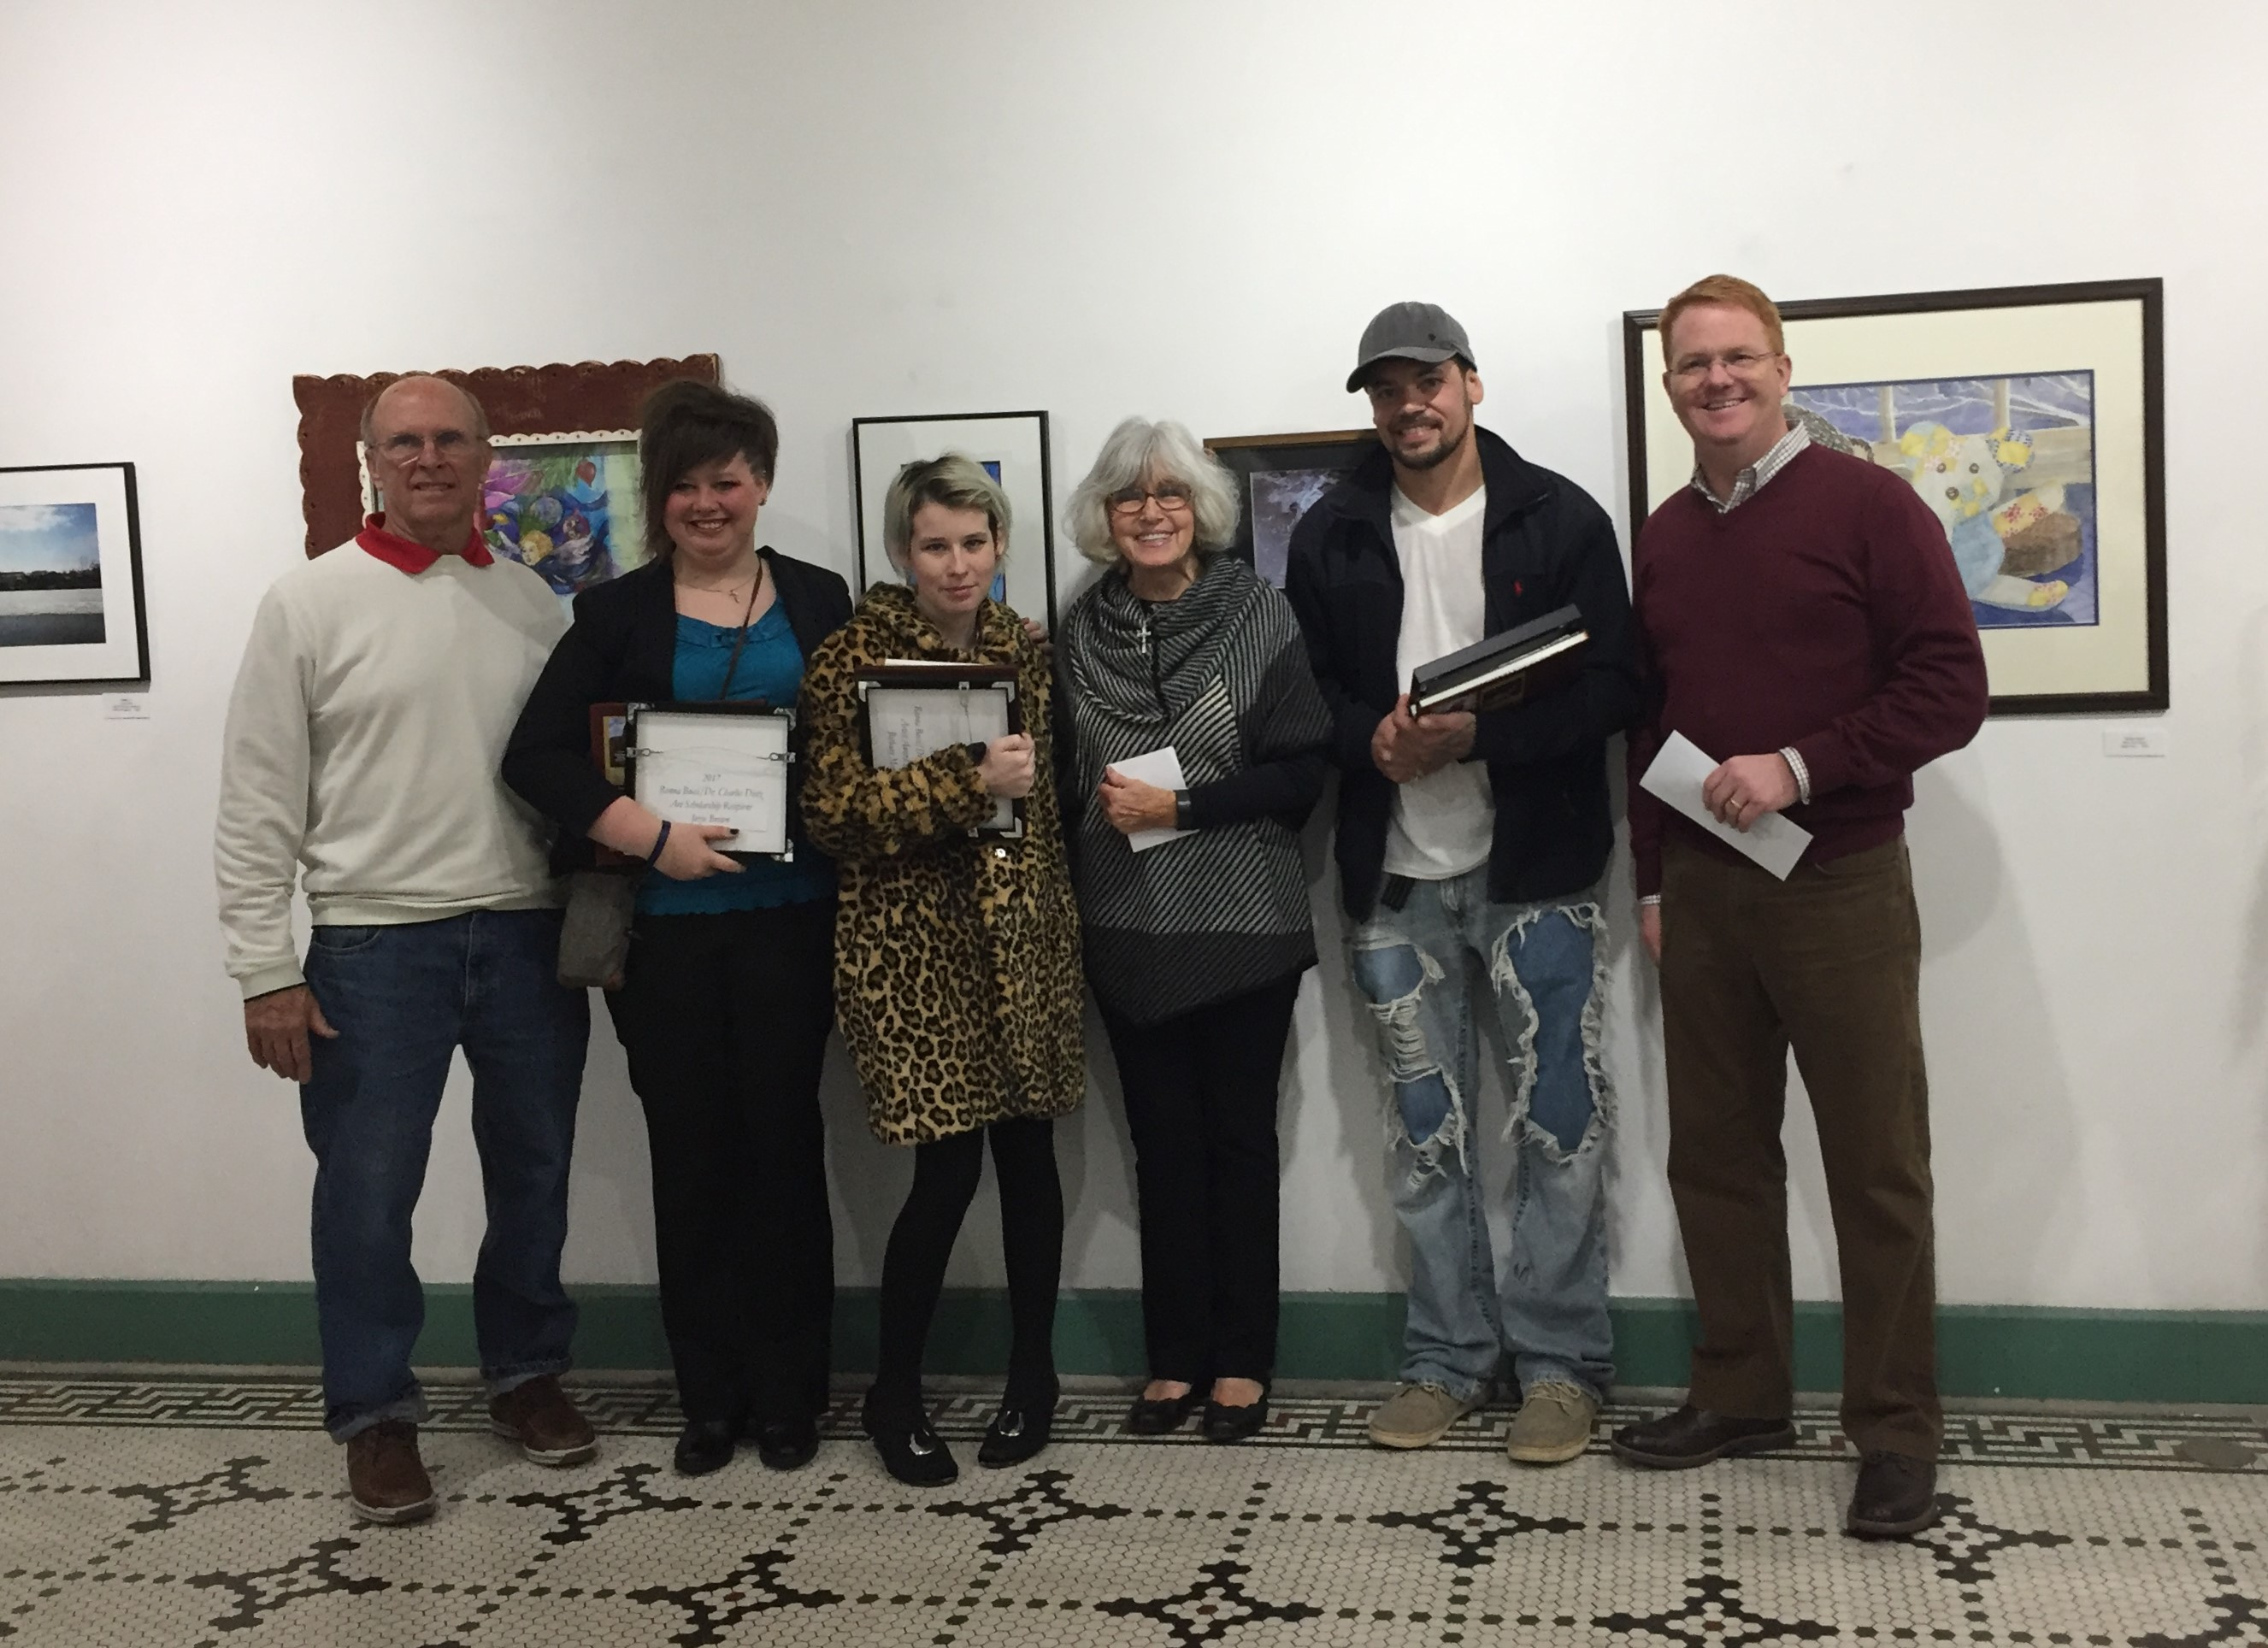 Congratulations to the Bucci Dietz Artist Award Winners!